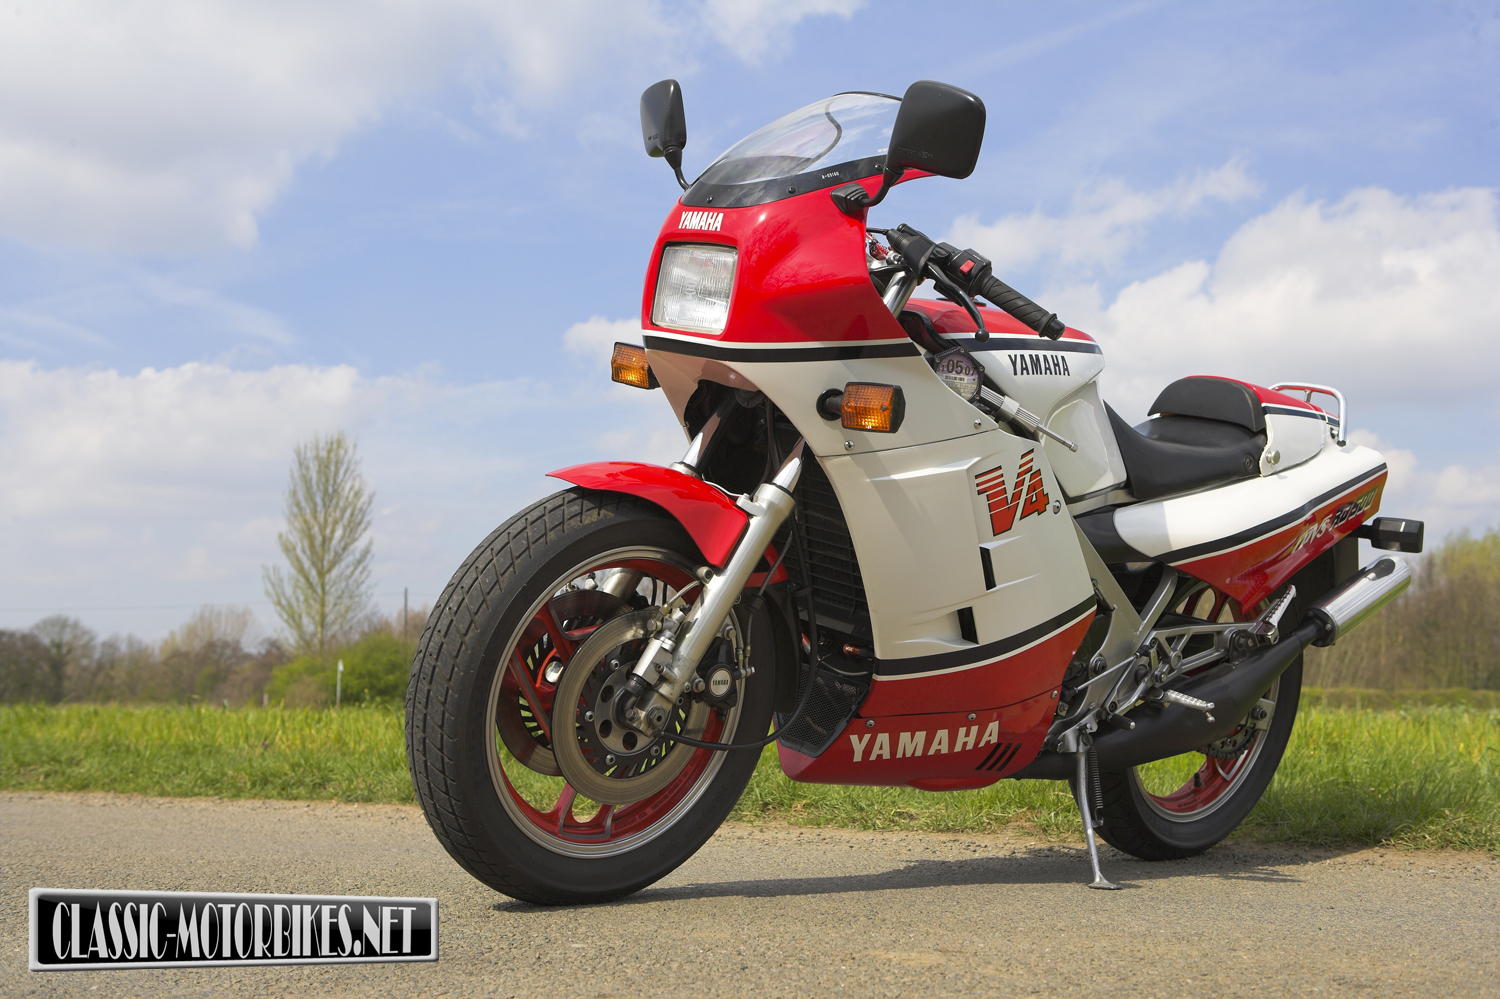 Yamaha RD500 Backgrounds, Compatible - PC, Mobile, Gadgets| 1500x999 px